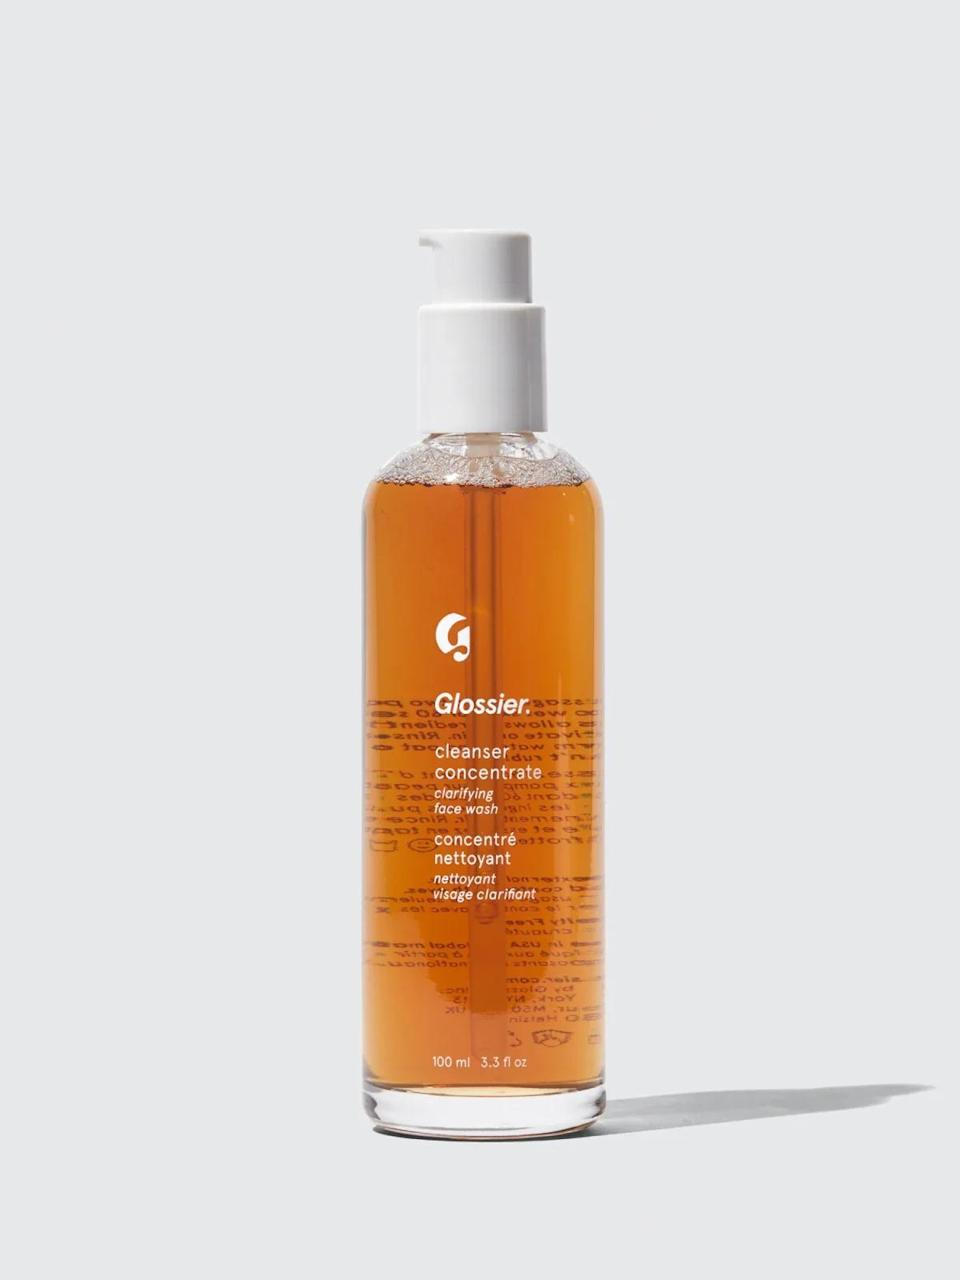 """<br><br><strong>Glossier</strong> Cleanser Concentrate, $, available at <a href=""""https://www.glossier.com/products/cleanser-concentrate?click_id=yfcSKx0RVxyLWtN0WlXSvXJOUkBwvlStk2K5Q00&irgwc=1&utm_source=impactradius&utm_medium=affiliate&utm_campaign=Refinery29&utm_content=431612&g_ref=fe96da46dc4a93&utm_publishergroup=digital_publishers&redirected=1"""" rel=""""nofollow noopener"""" target=""""_blank"""" data-ylk=""""slk:Glossier"""" class=""""link rapid-noclick-resp"""">Glossier</a>"""